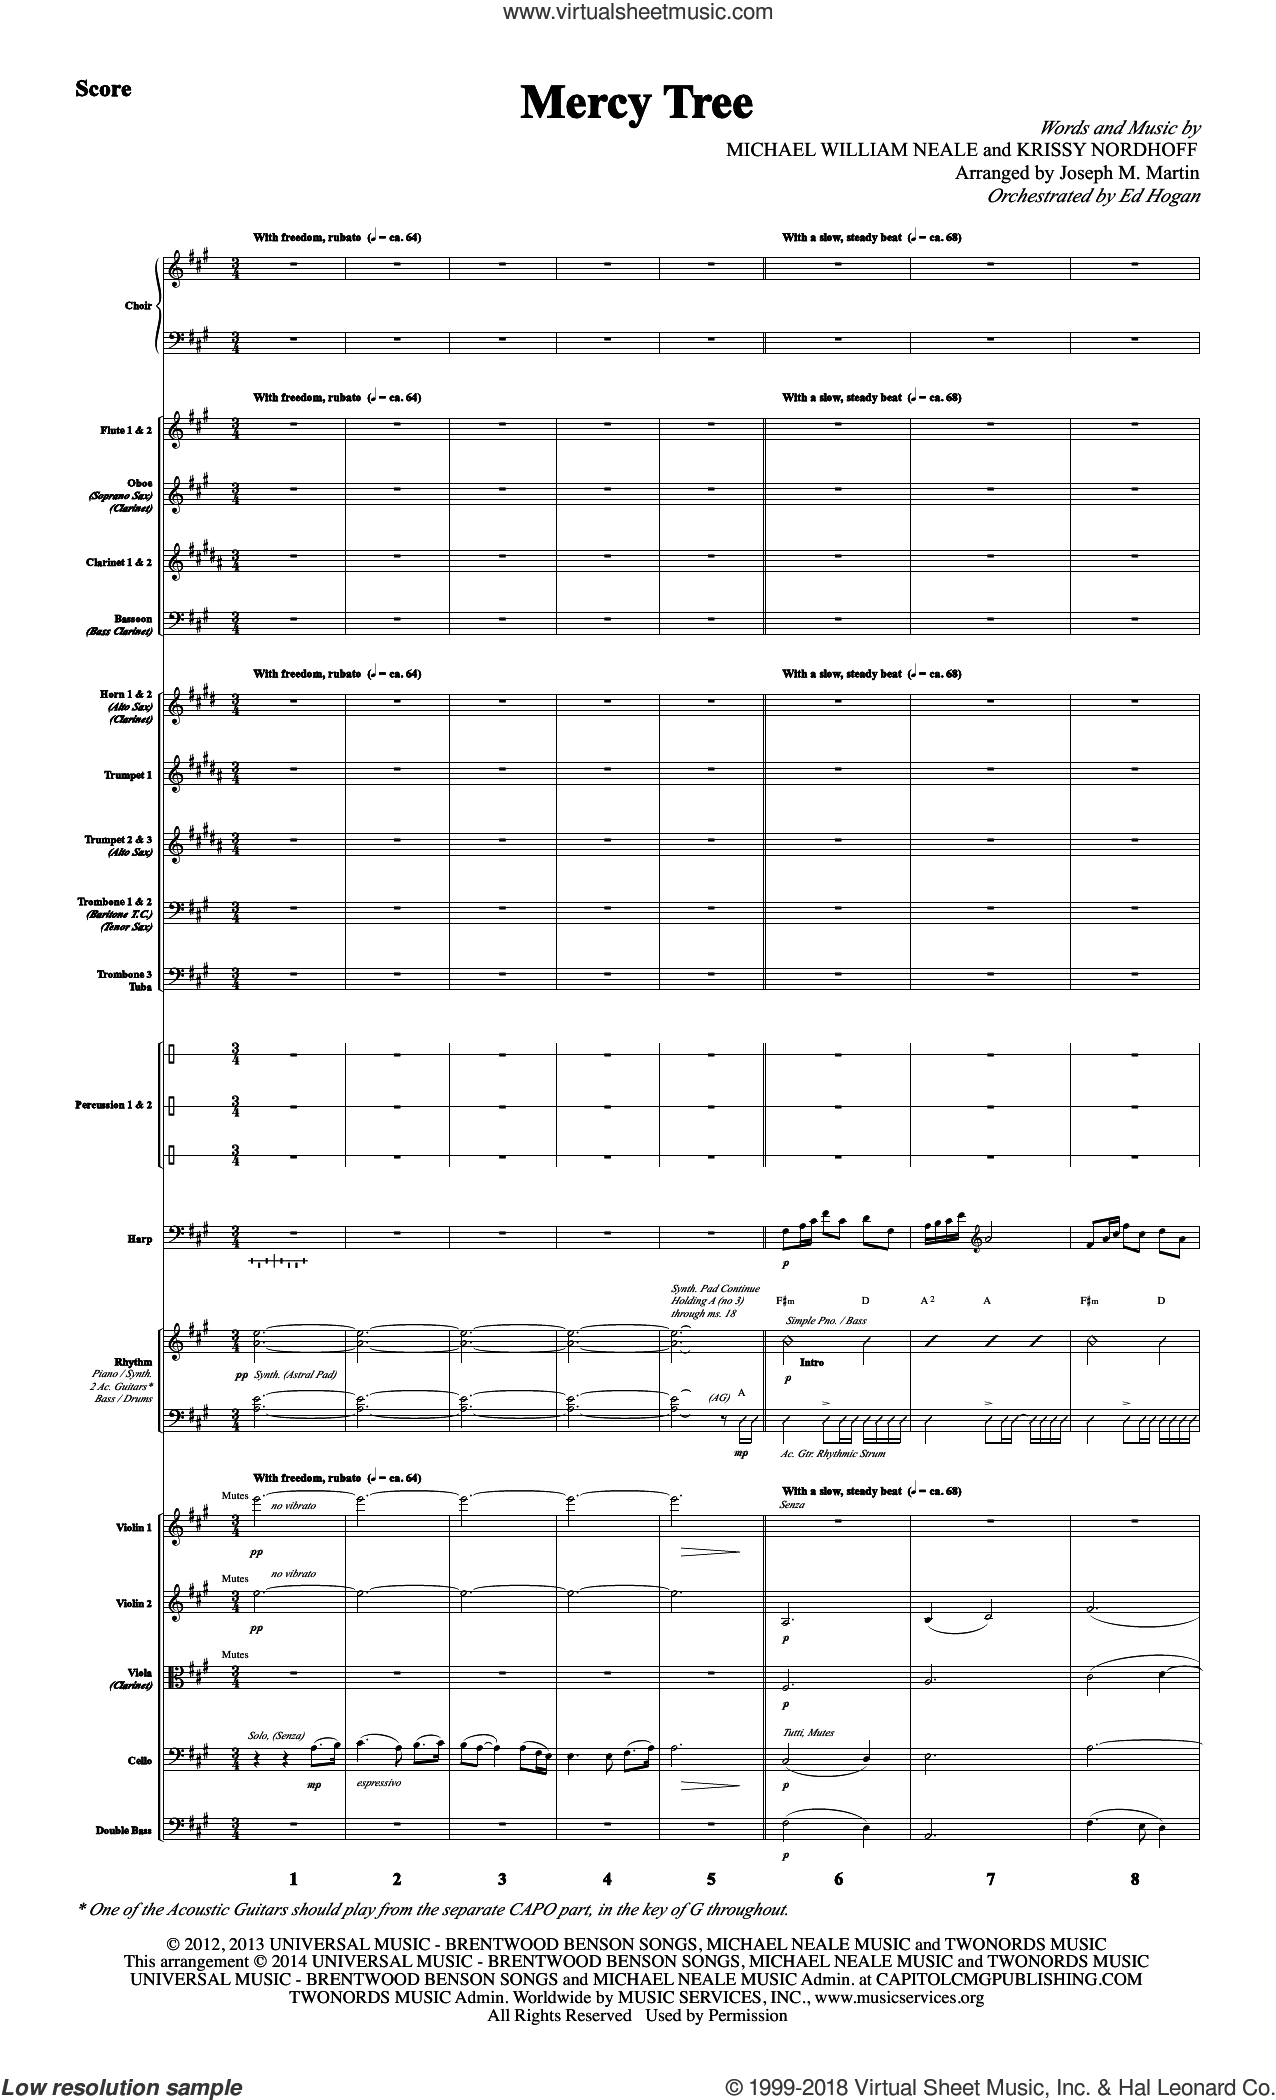 Mercy Tree (COMPLETE) sheet music for orchestra/band by Joseph Martin, Joseph M. Martin, Krissy Nordhoff, Lacey Sturm and Michael William Neale, intermediate. Score Image Preview.